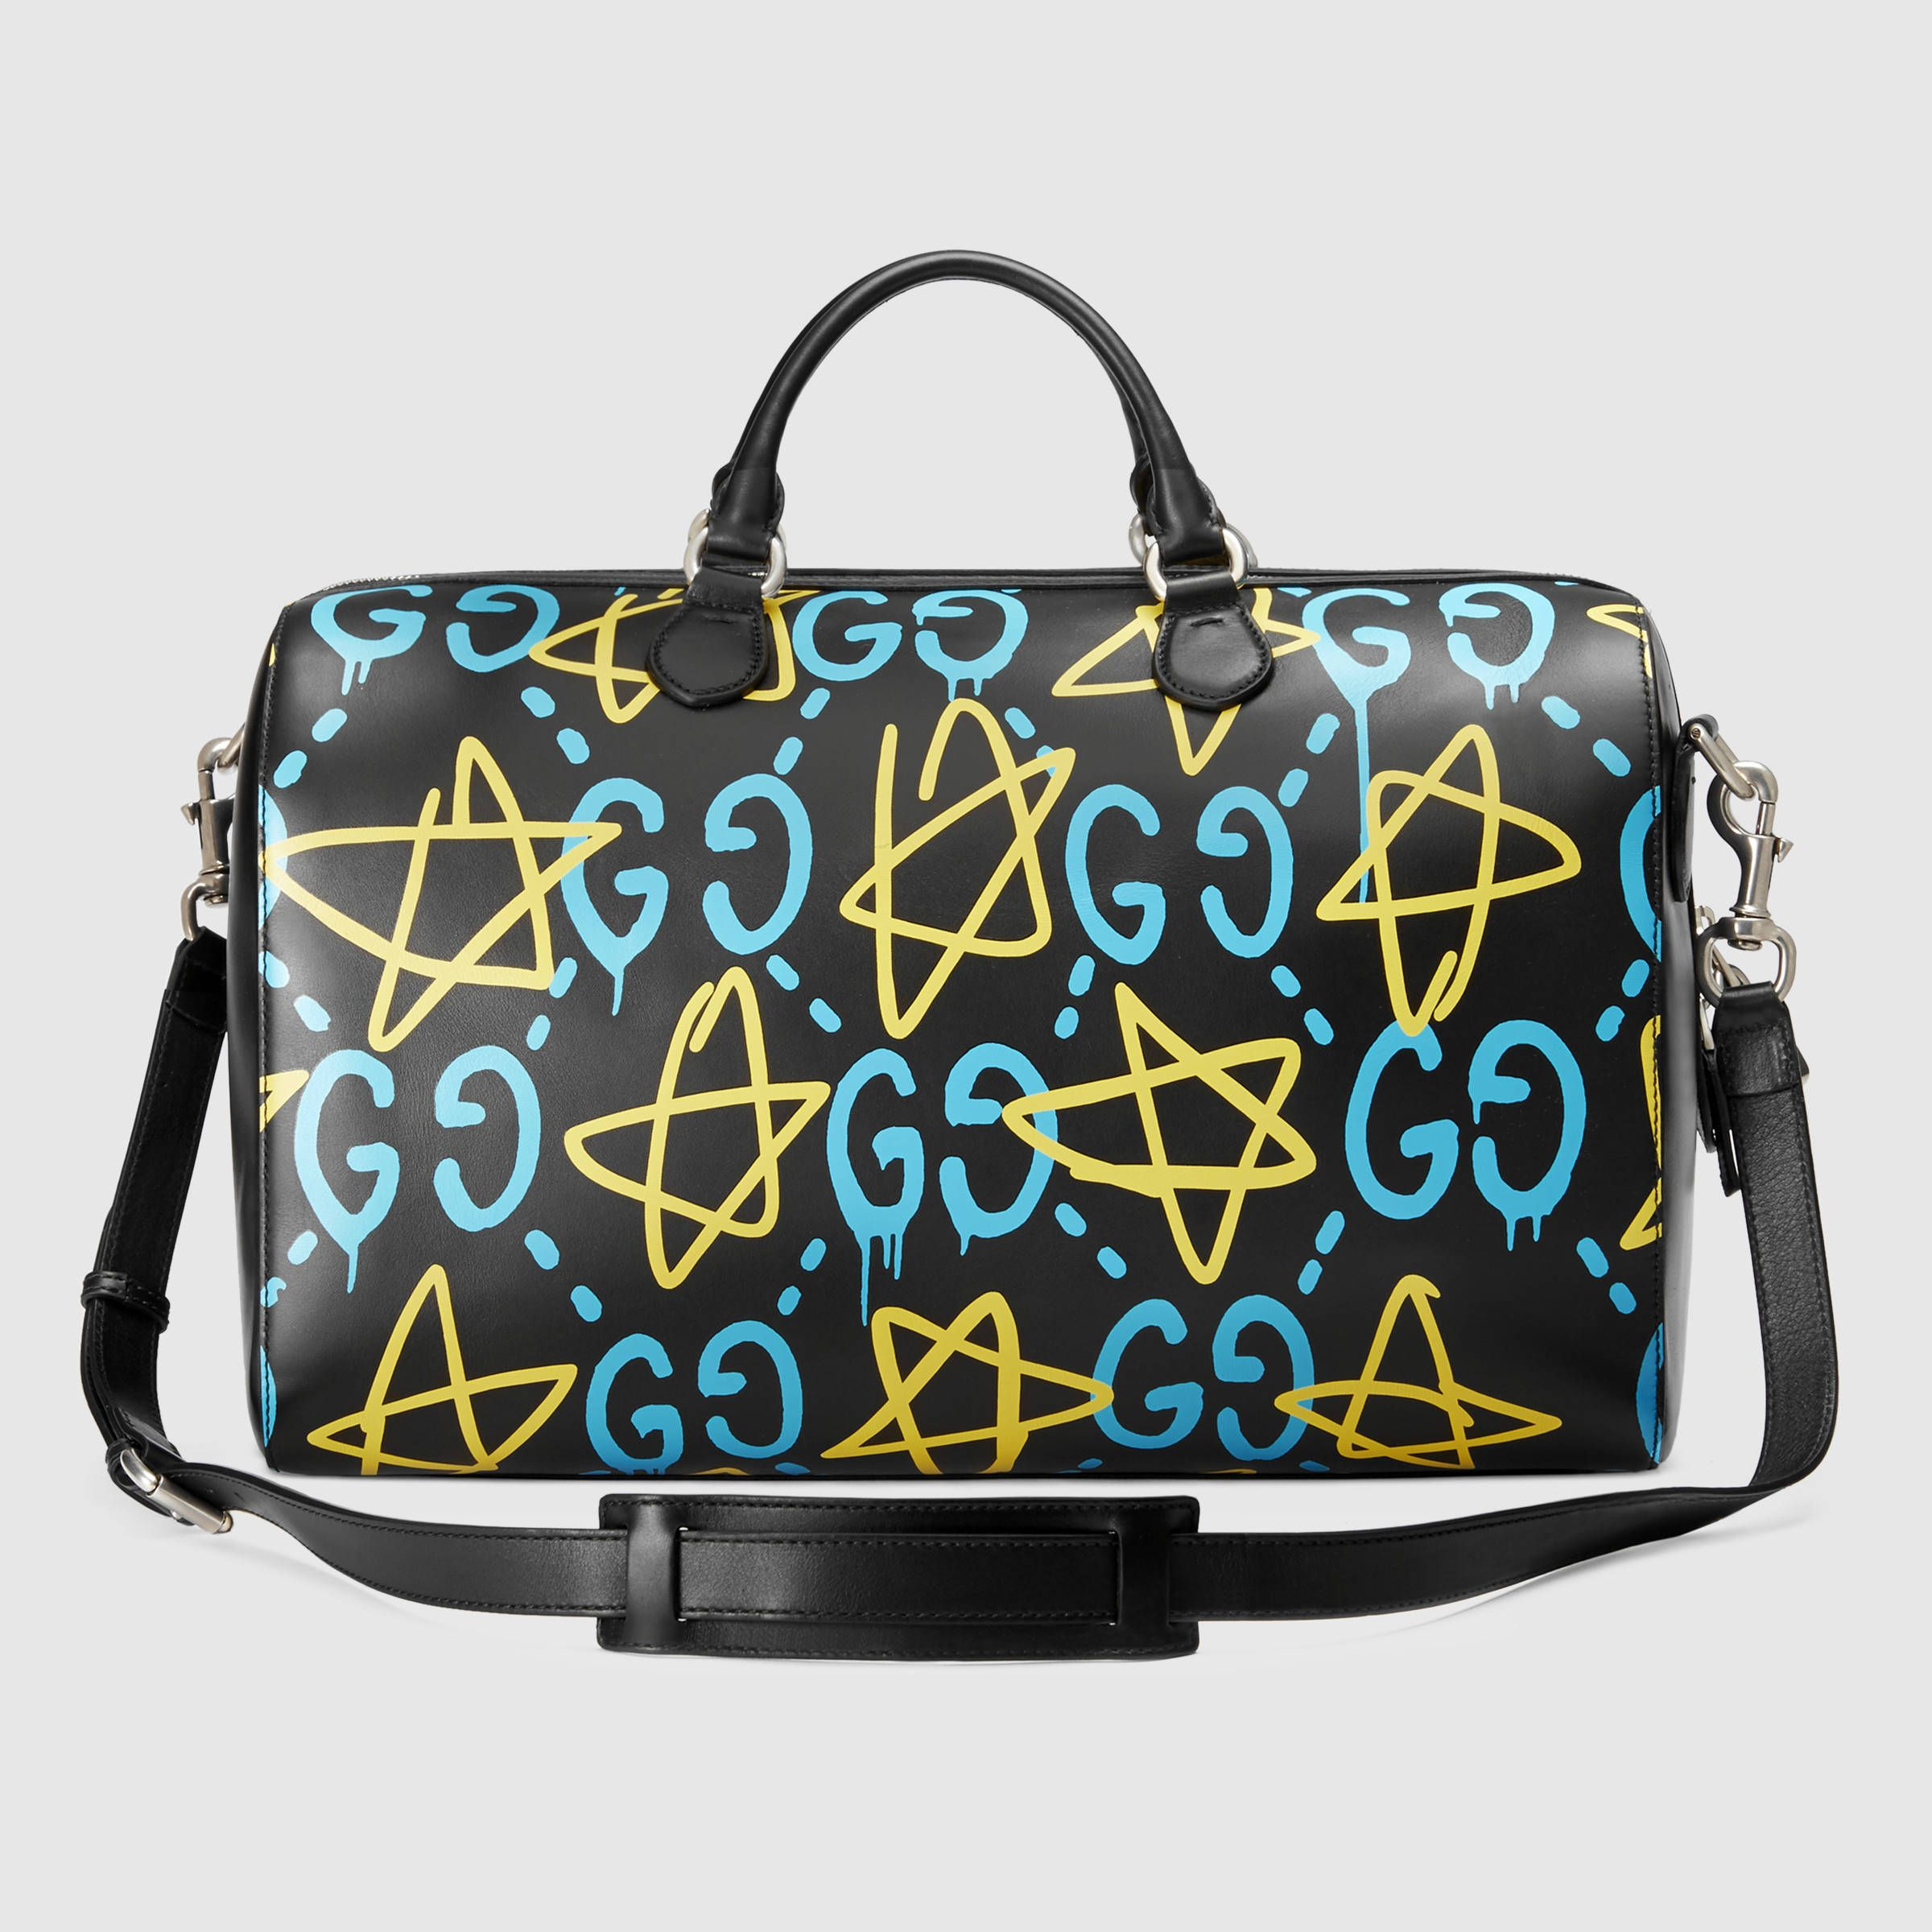 604c6bb8f814 Gucci Ghost Duffle Bag | purses/bags | Gucci, Bags, Fashion